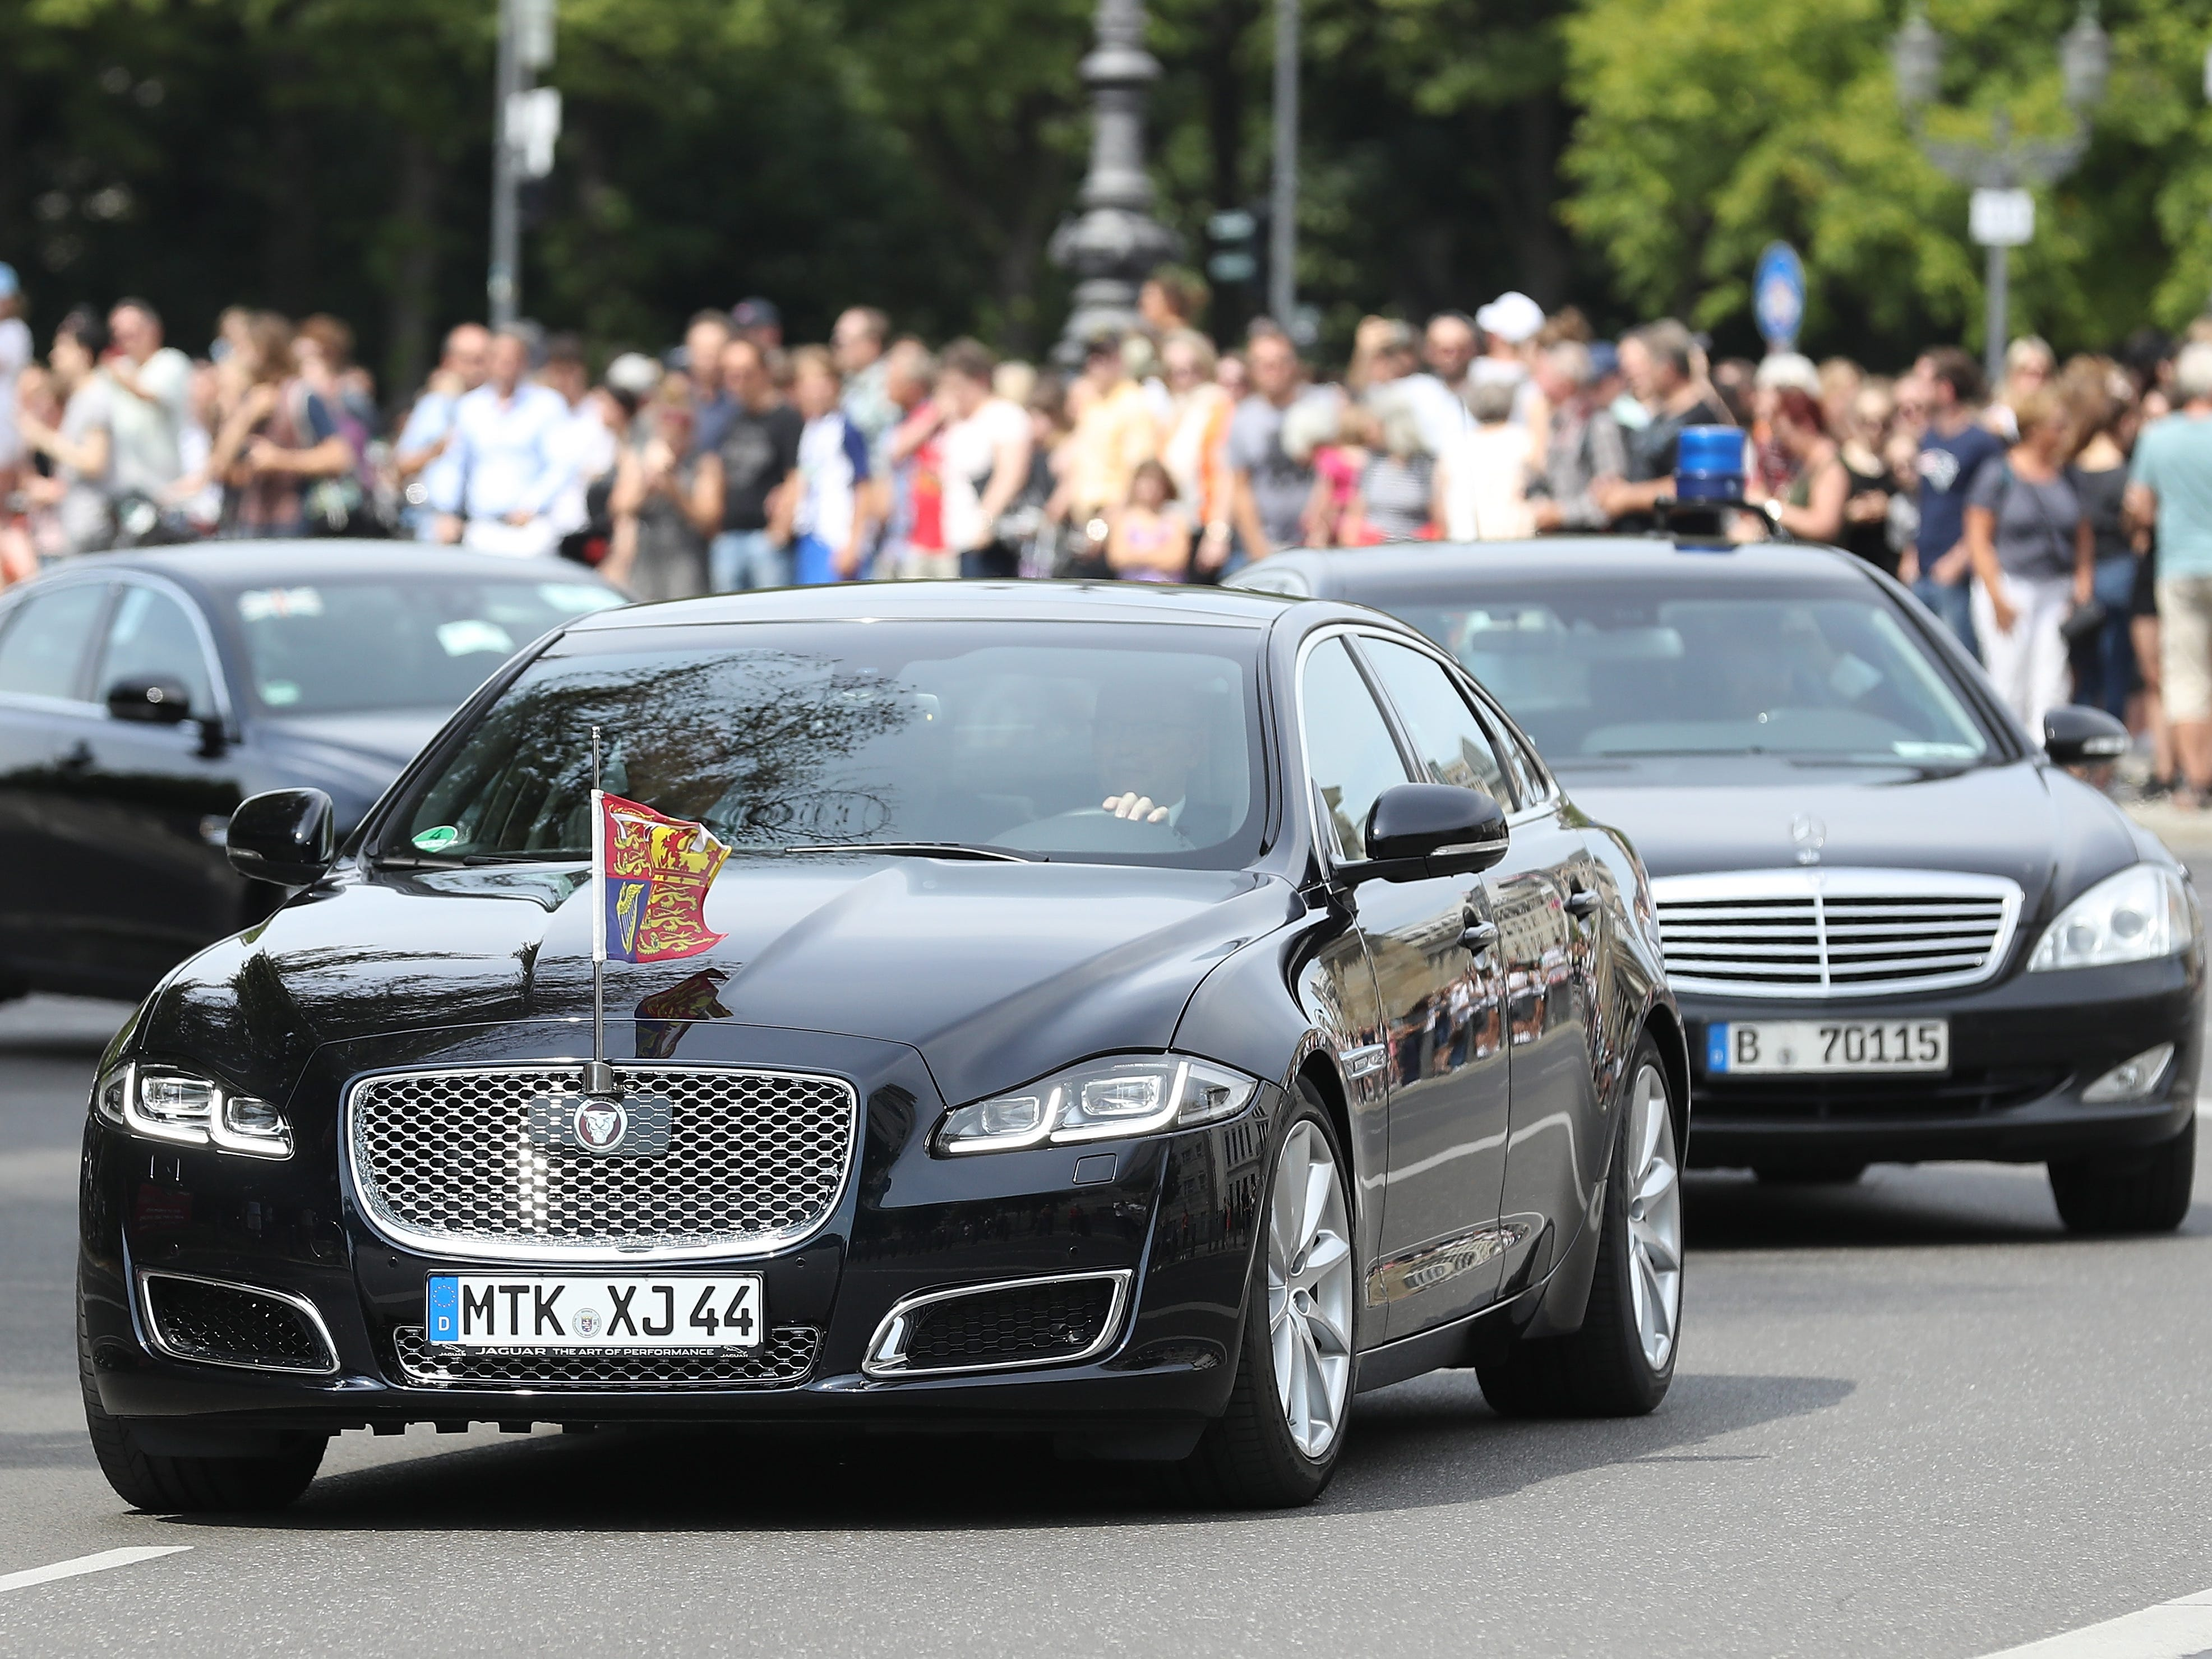 The Duke And Duchess Of Cambridge Visit Germany in this limo, July 19, 2017.